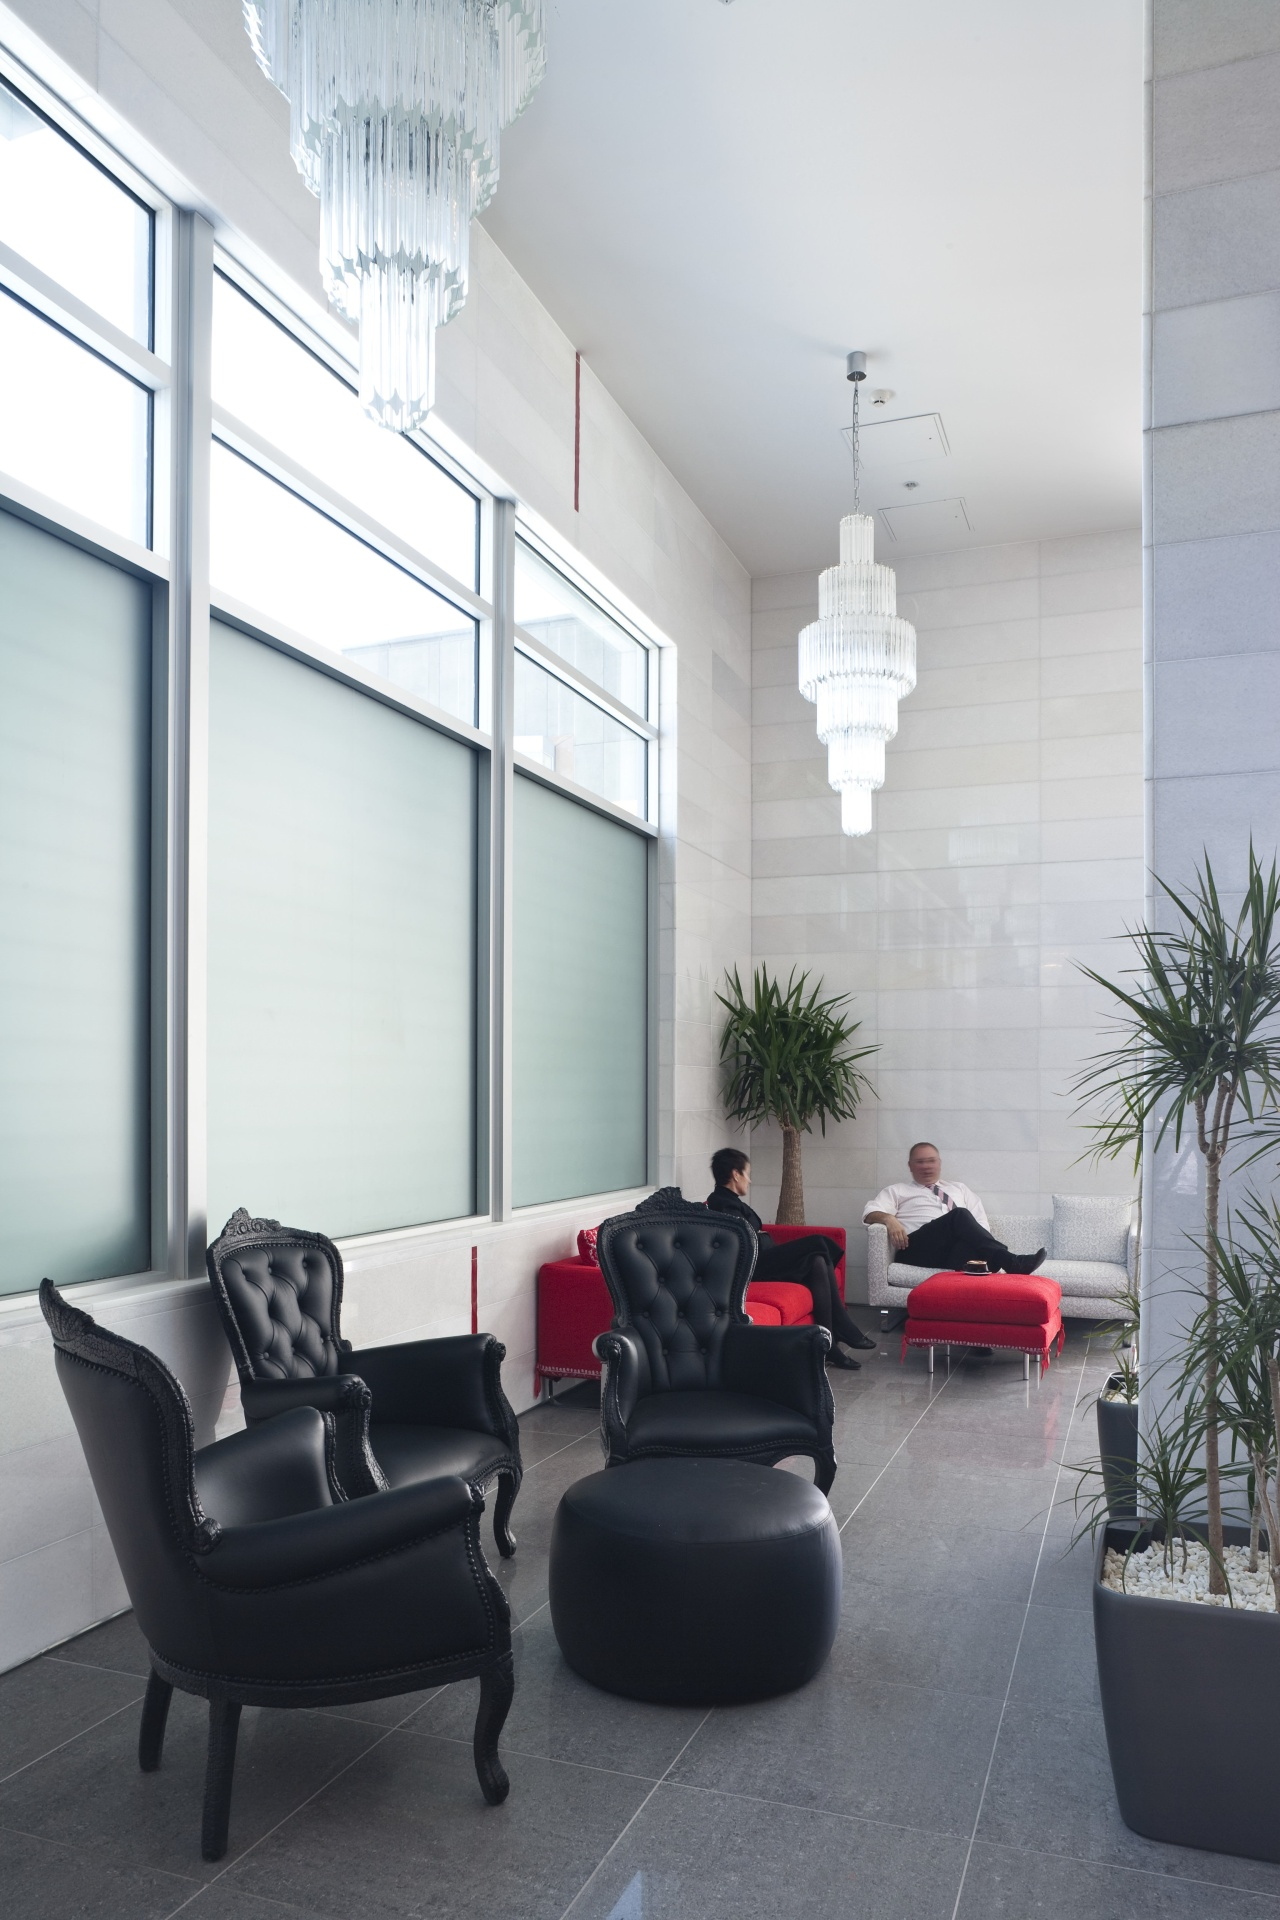 The office interiors at the Club Tower reflect architecture, ceiling, floor, furniture, home, house, interior design, living room, window, white, gray